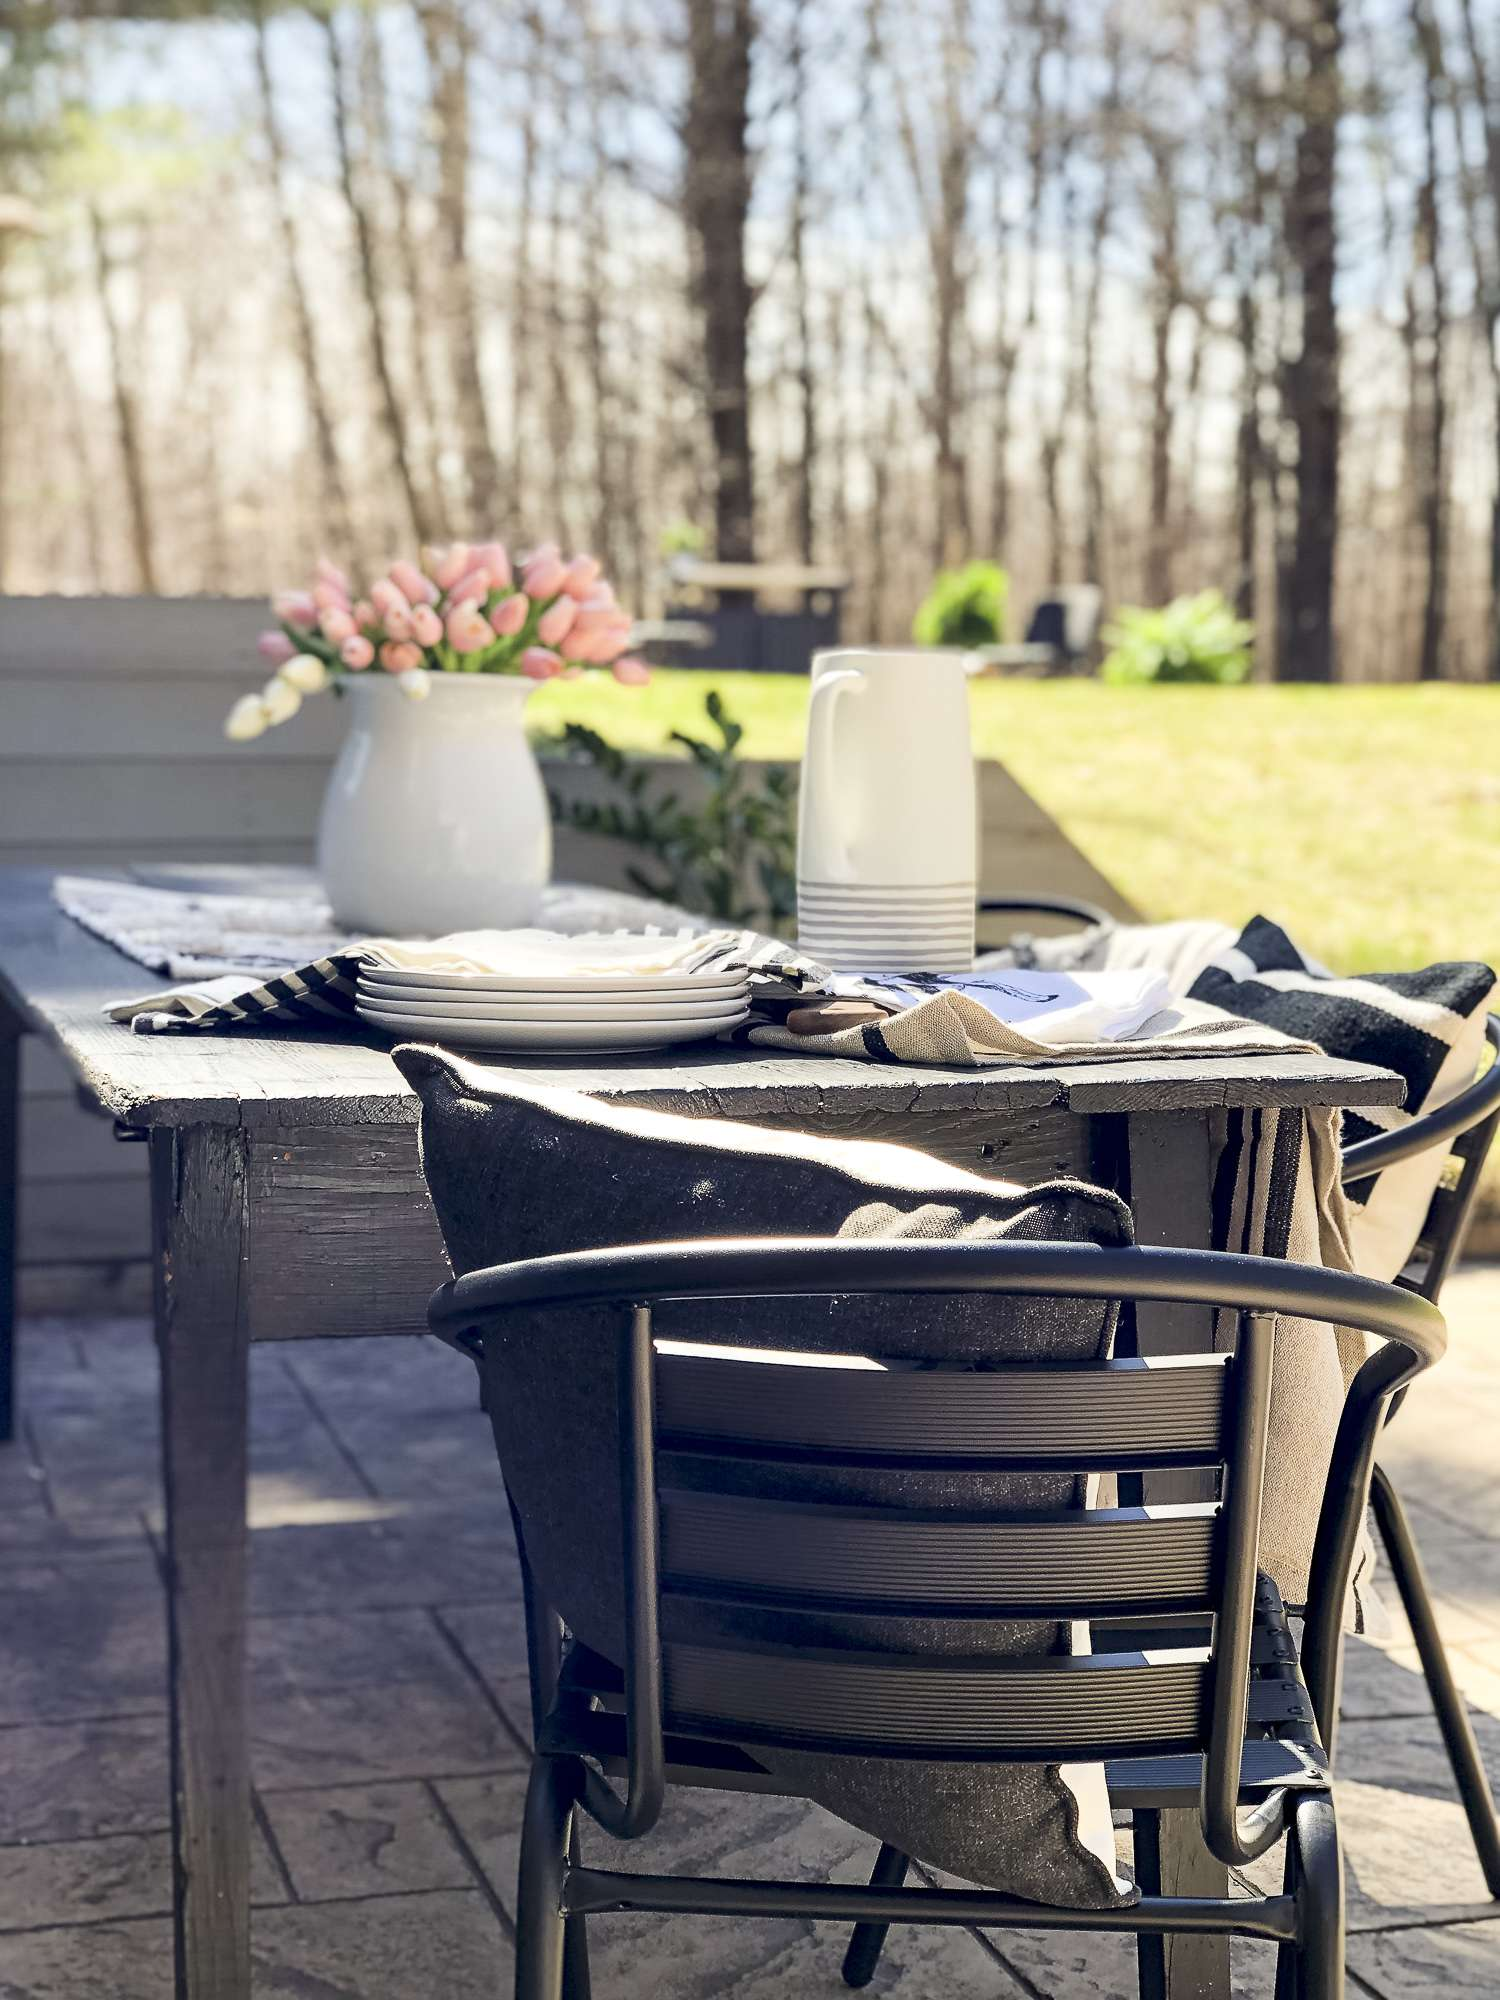 Are you excited for outdoor entertaining? Today I'm sharing my stamped concrete fire pit design plan as I gear up for the warm weather season! #fromhousetohaven #stampedconcrete #patiodesign #firepit